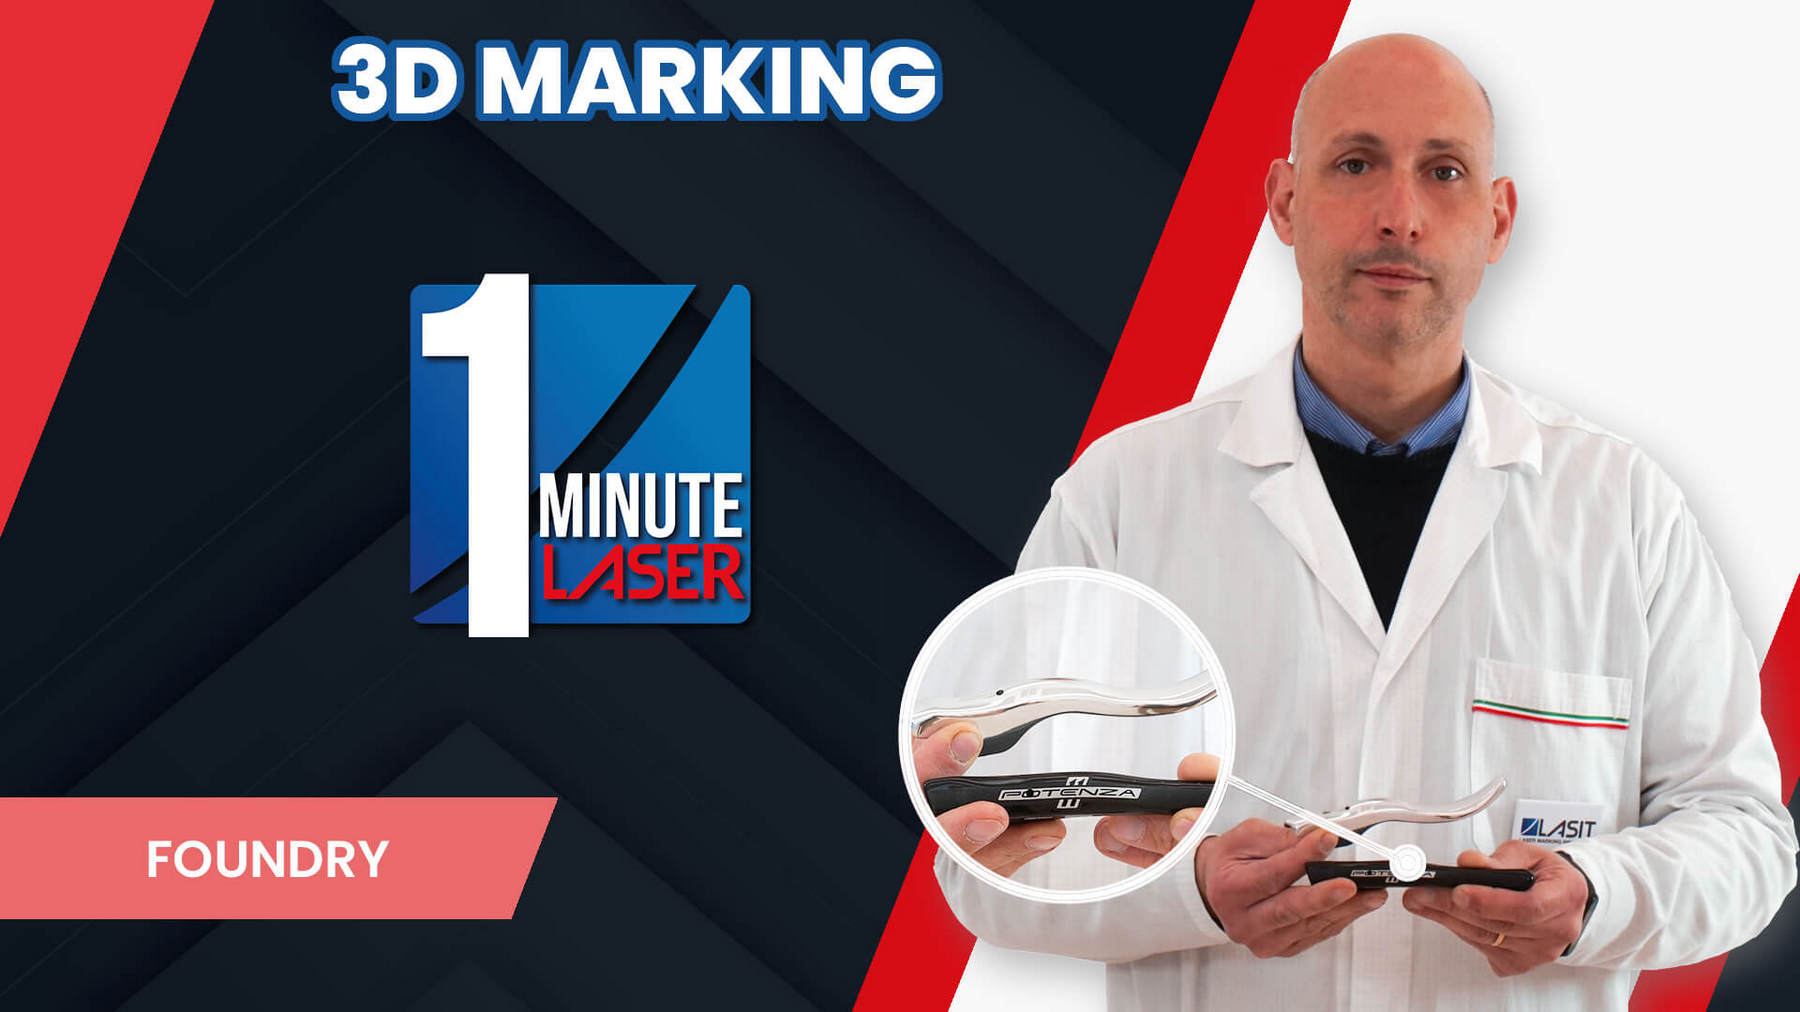 One-Minute-Laser-5-3D_Marking_COPERTINA Foundry